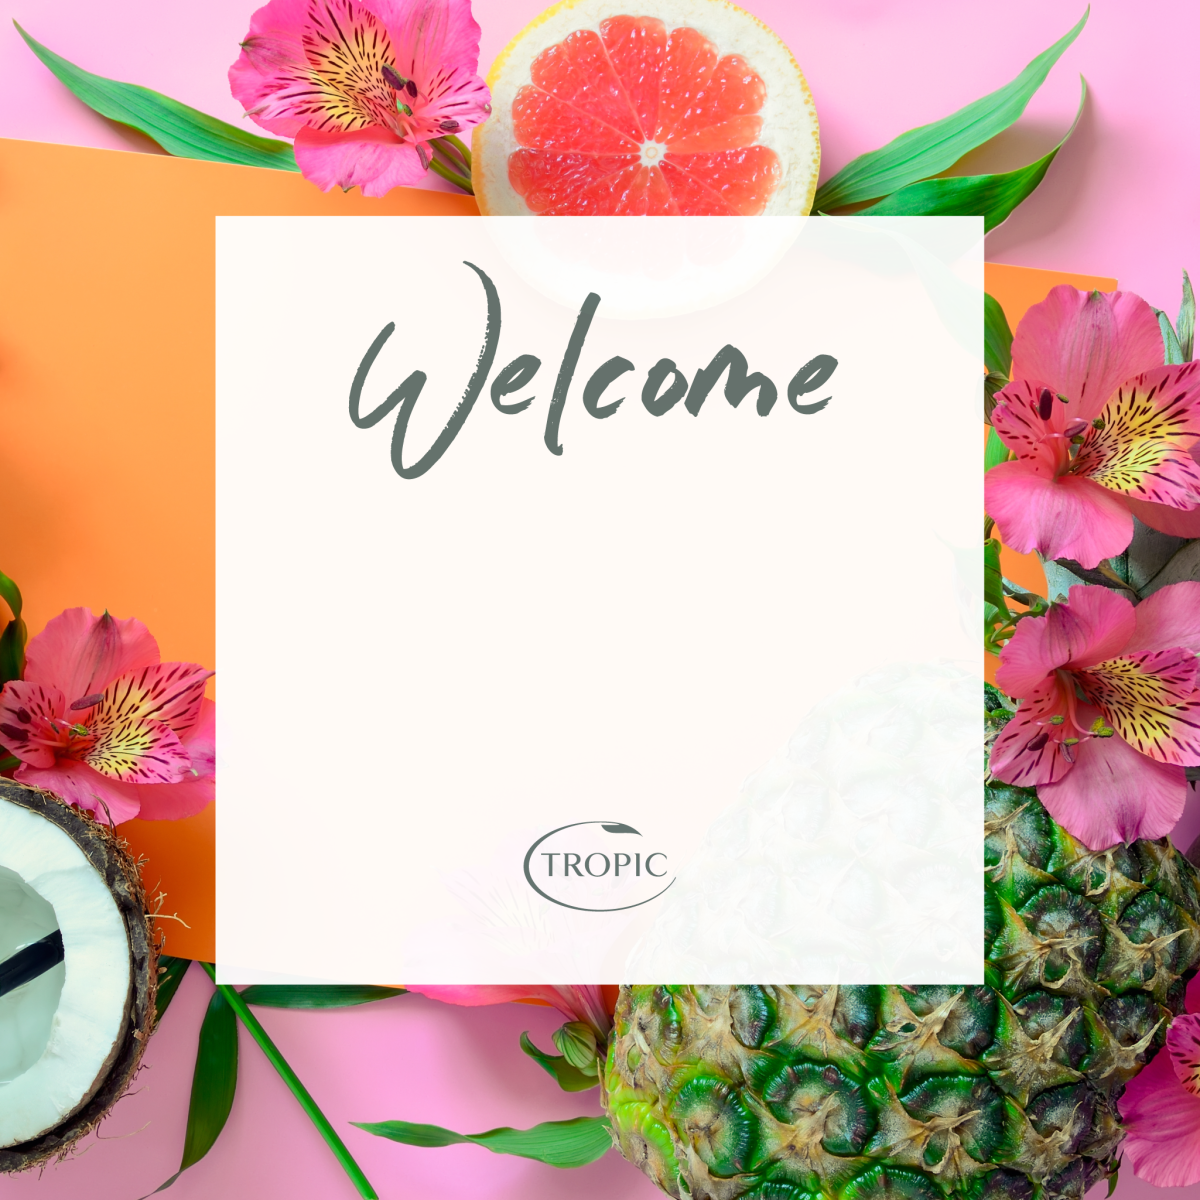 Welcome To Tropic Skincare Tropic Skincare Body Shop At Home Thank You Flowers